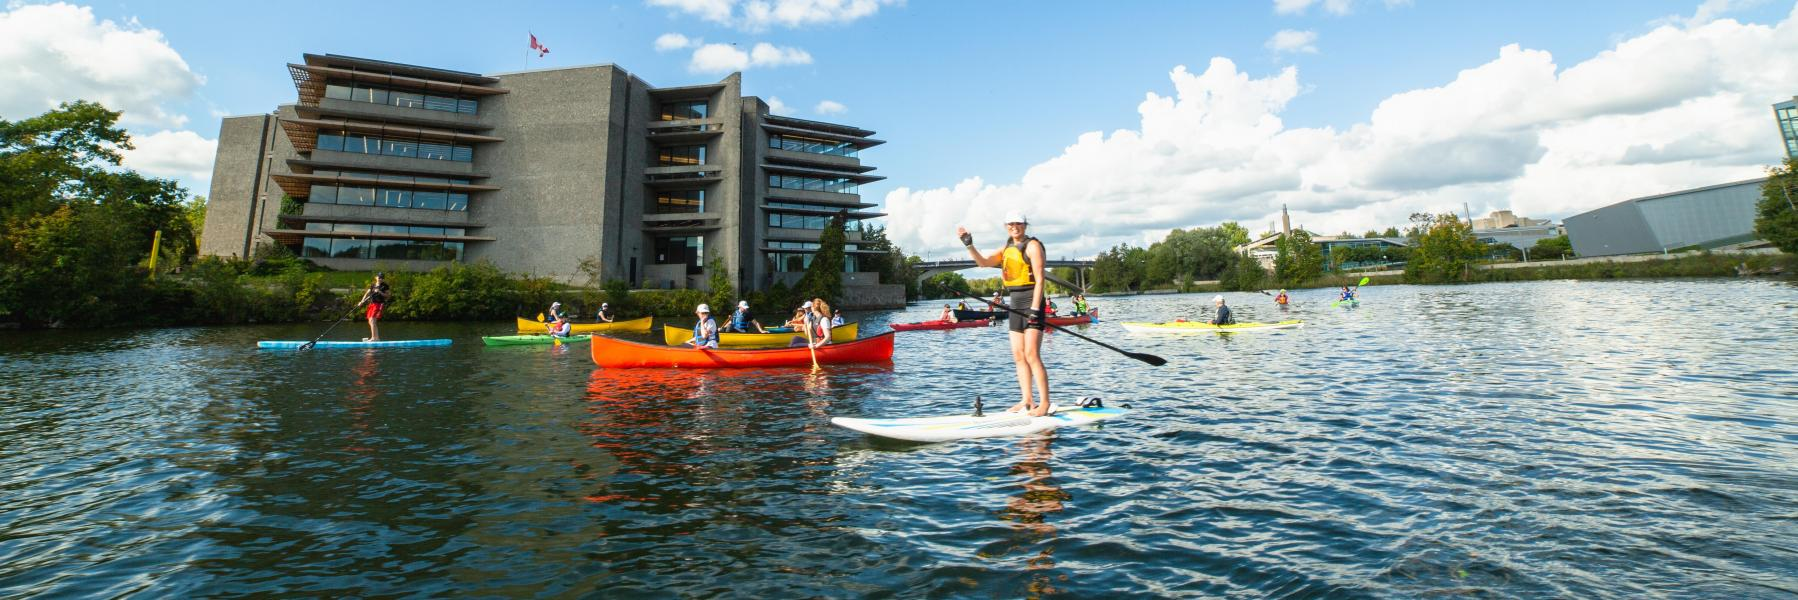 Students in canoes and on paddle boards on the Otonabee River boating past Bata Library.